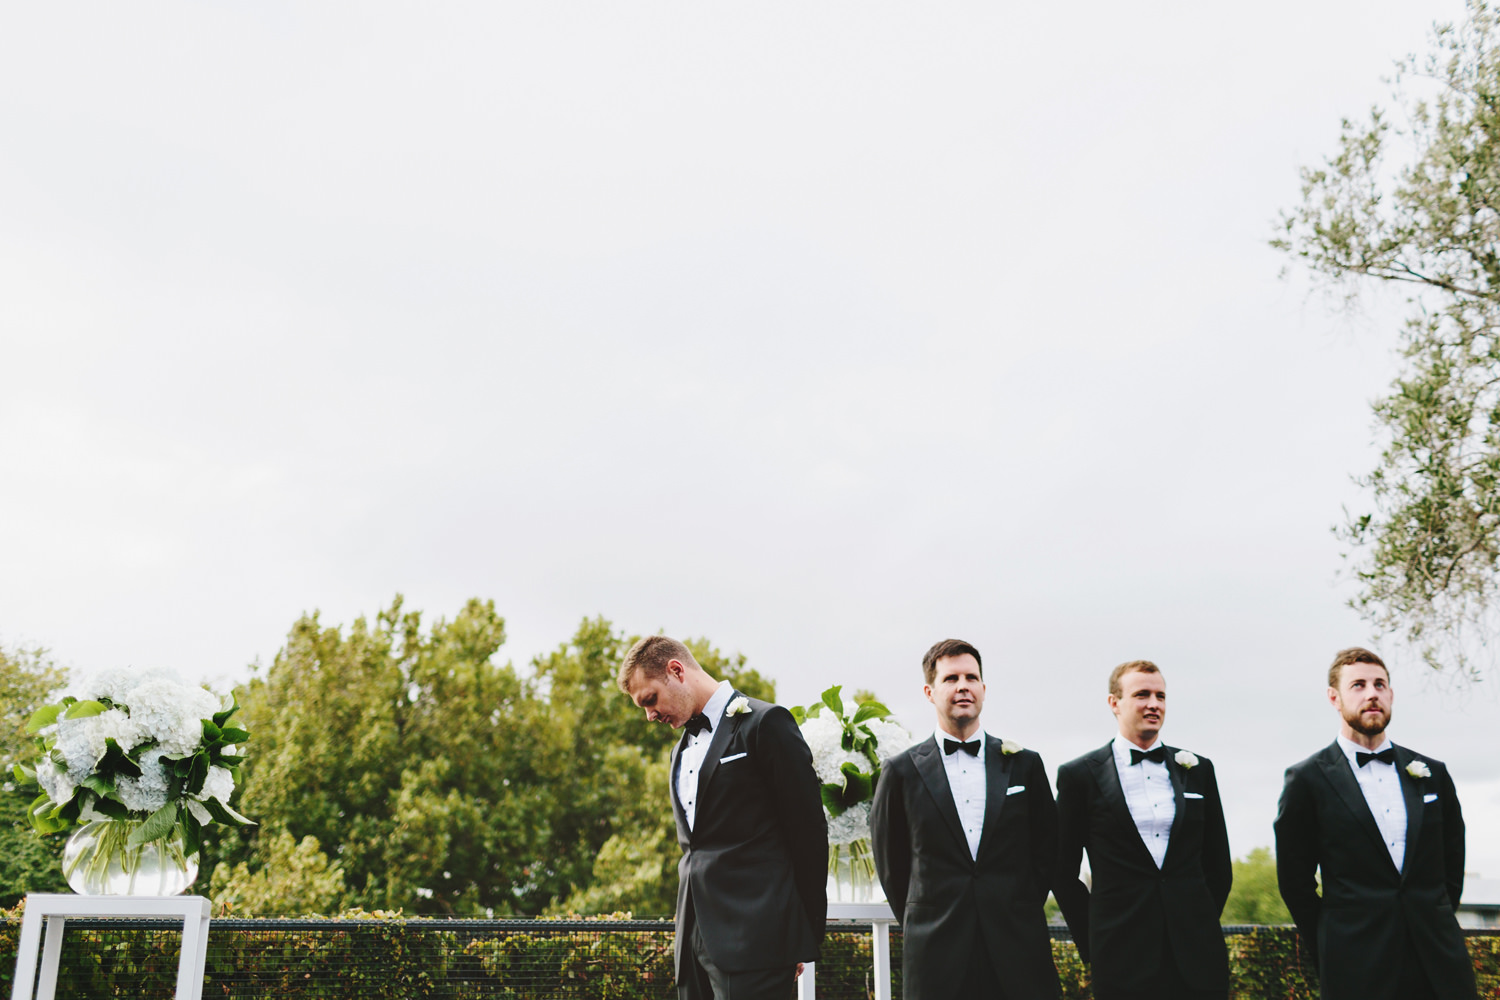 028-Melbourne_Wedding_Photographer_Jonathan_Ong_Best2015.jpg